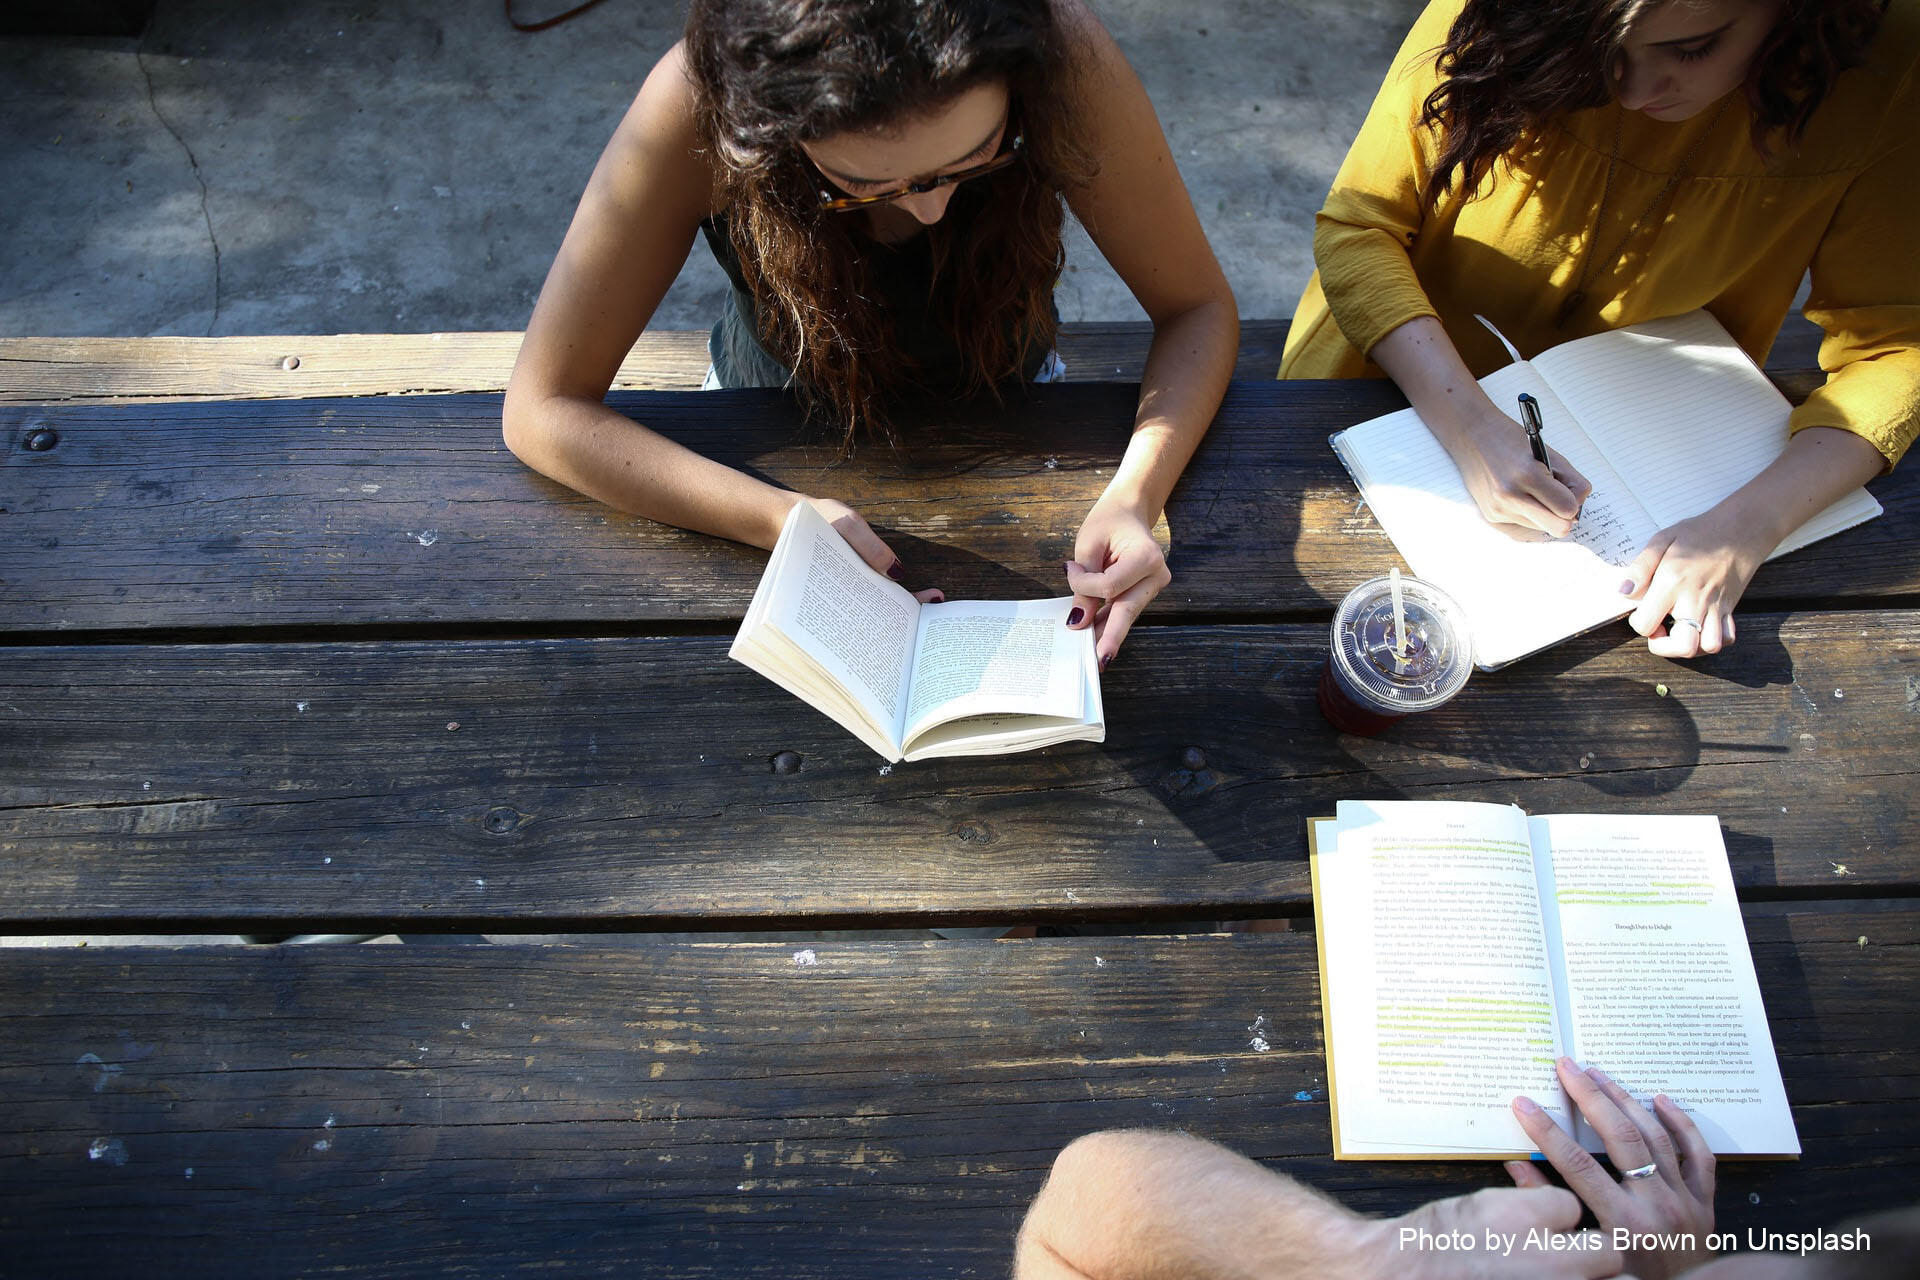 Students studying together on a picnic table